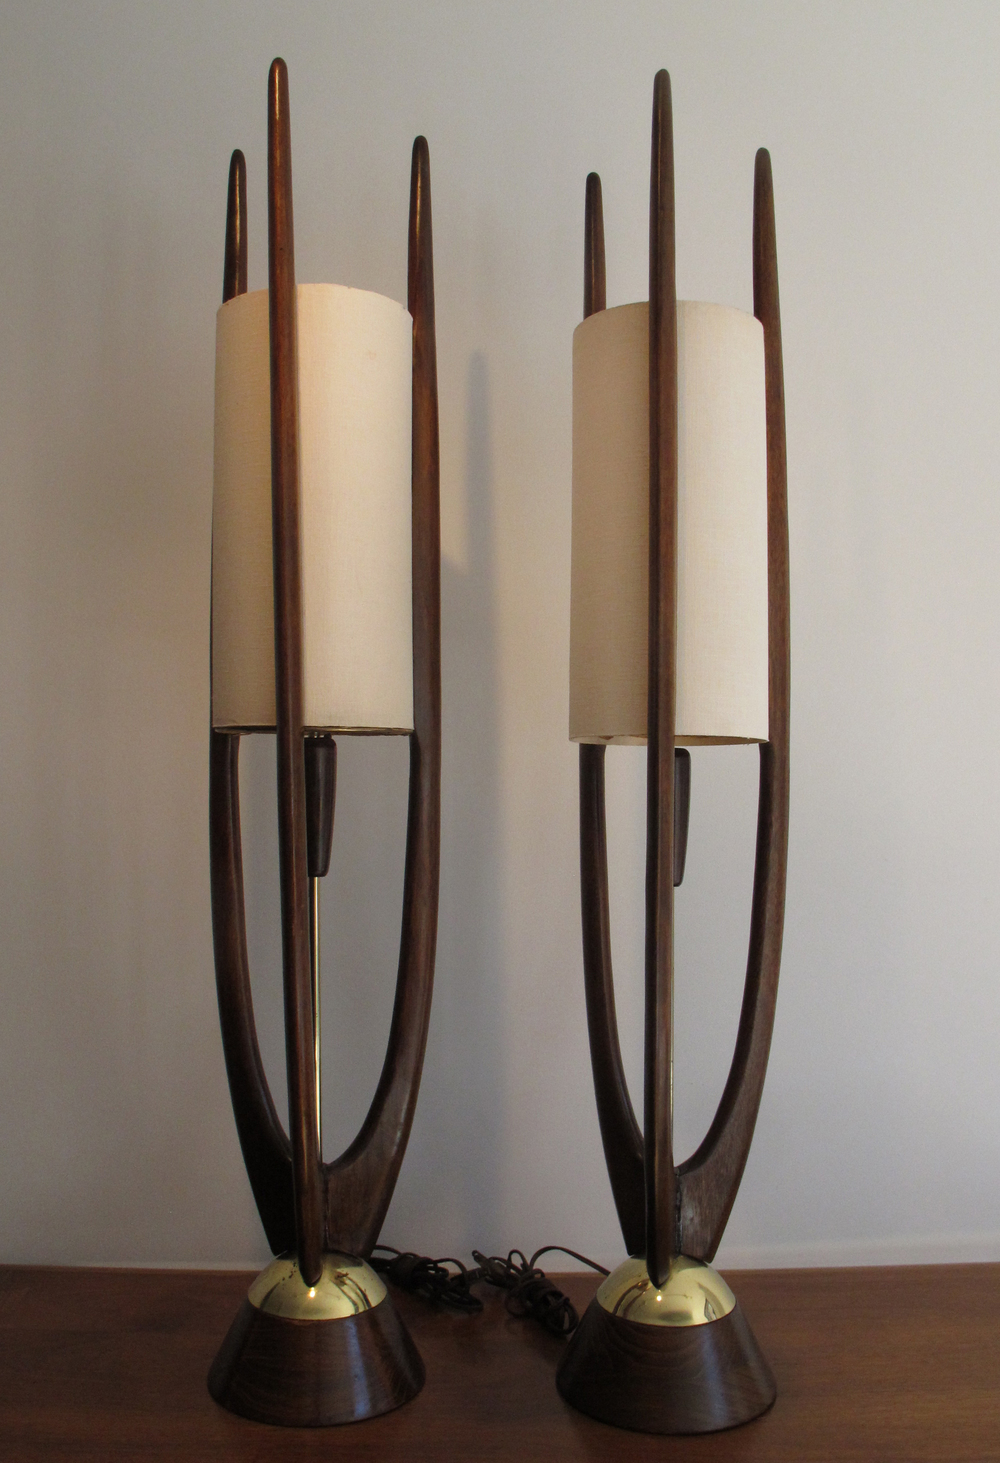 PAIR OF WALNUT AND BRASS SCULPTED TABLE LAMPS BY MODELINE OF CALIFORNIA